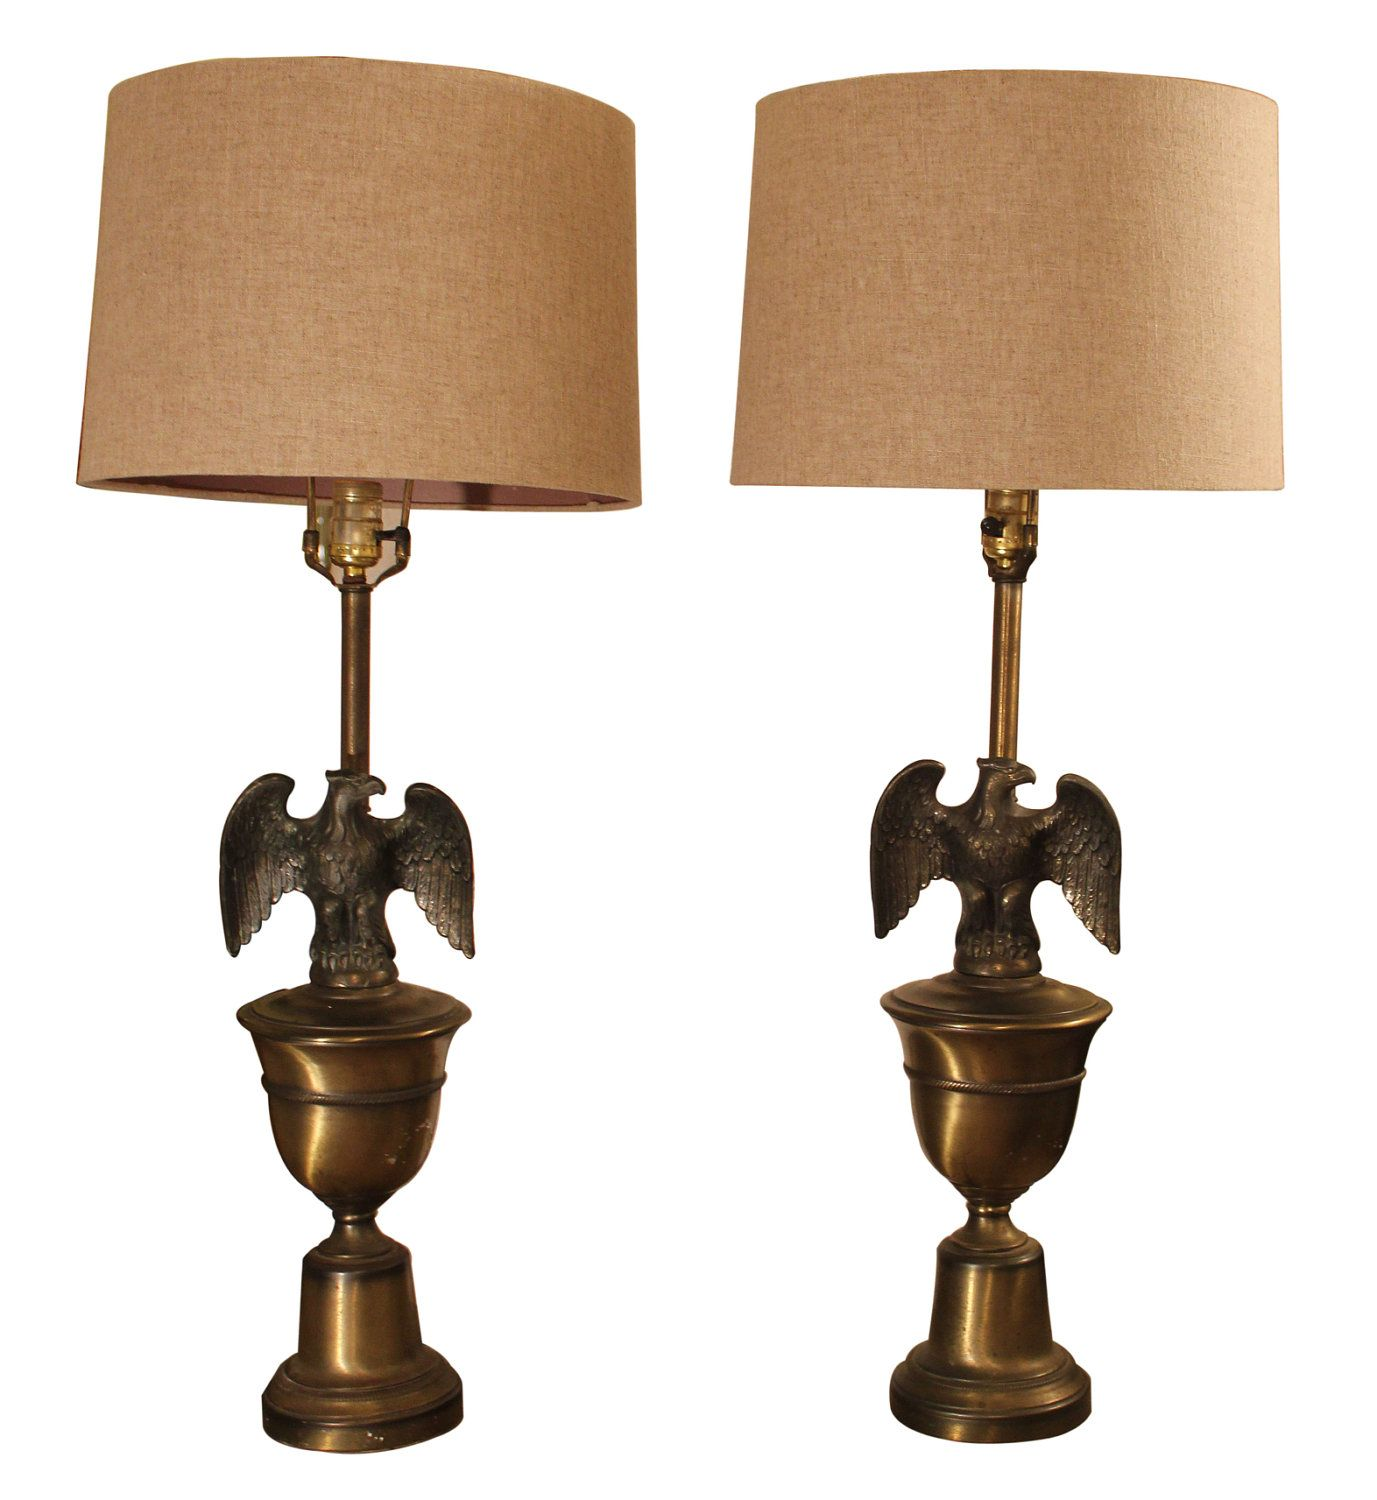 1930's table lamp - federal style | table lamps | Pinterest ...